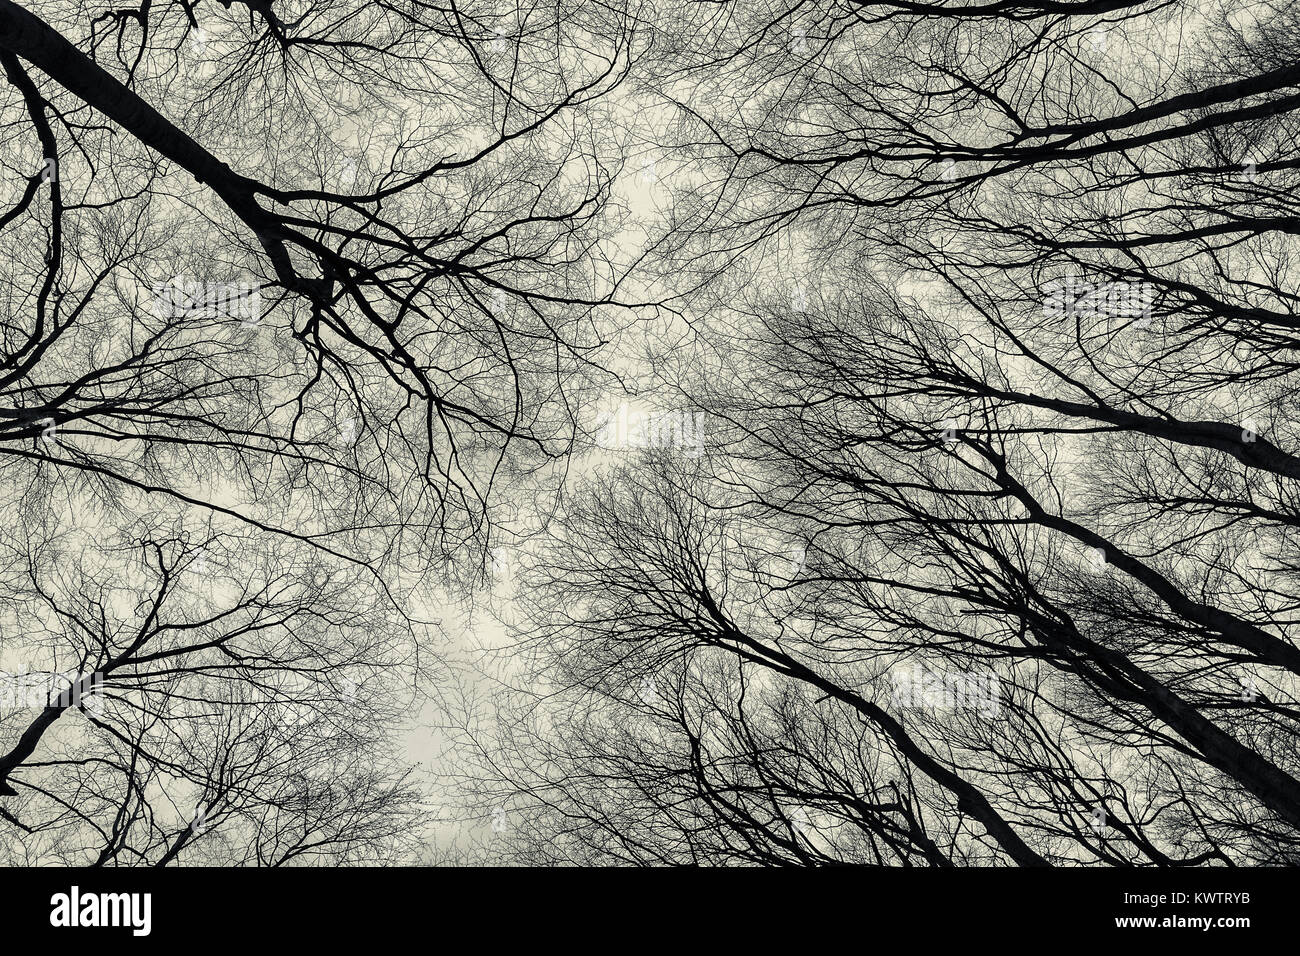 Bottom view of trees in late autumn forest. Melancholic atmosphere abstract background. - Stock Image